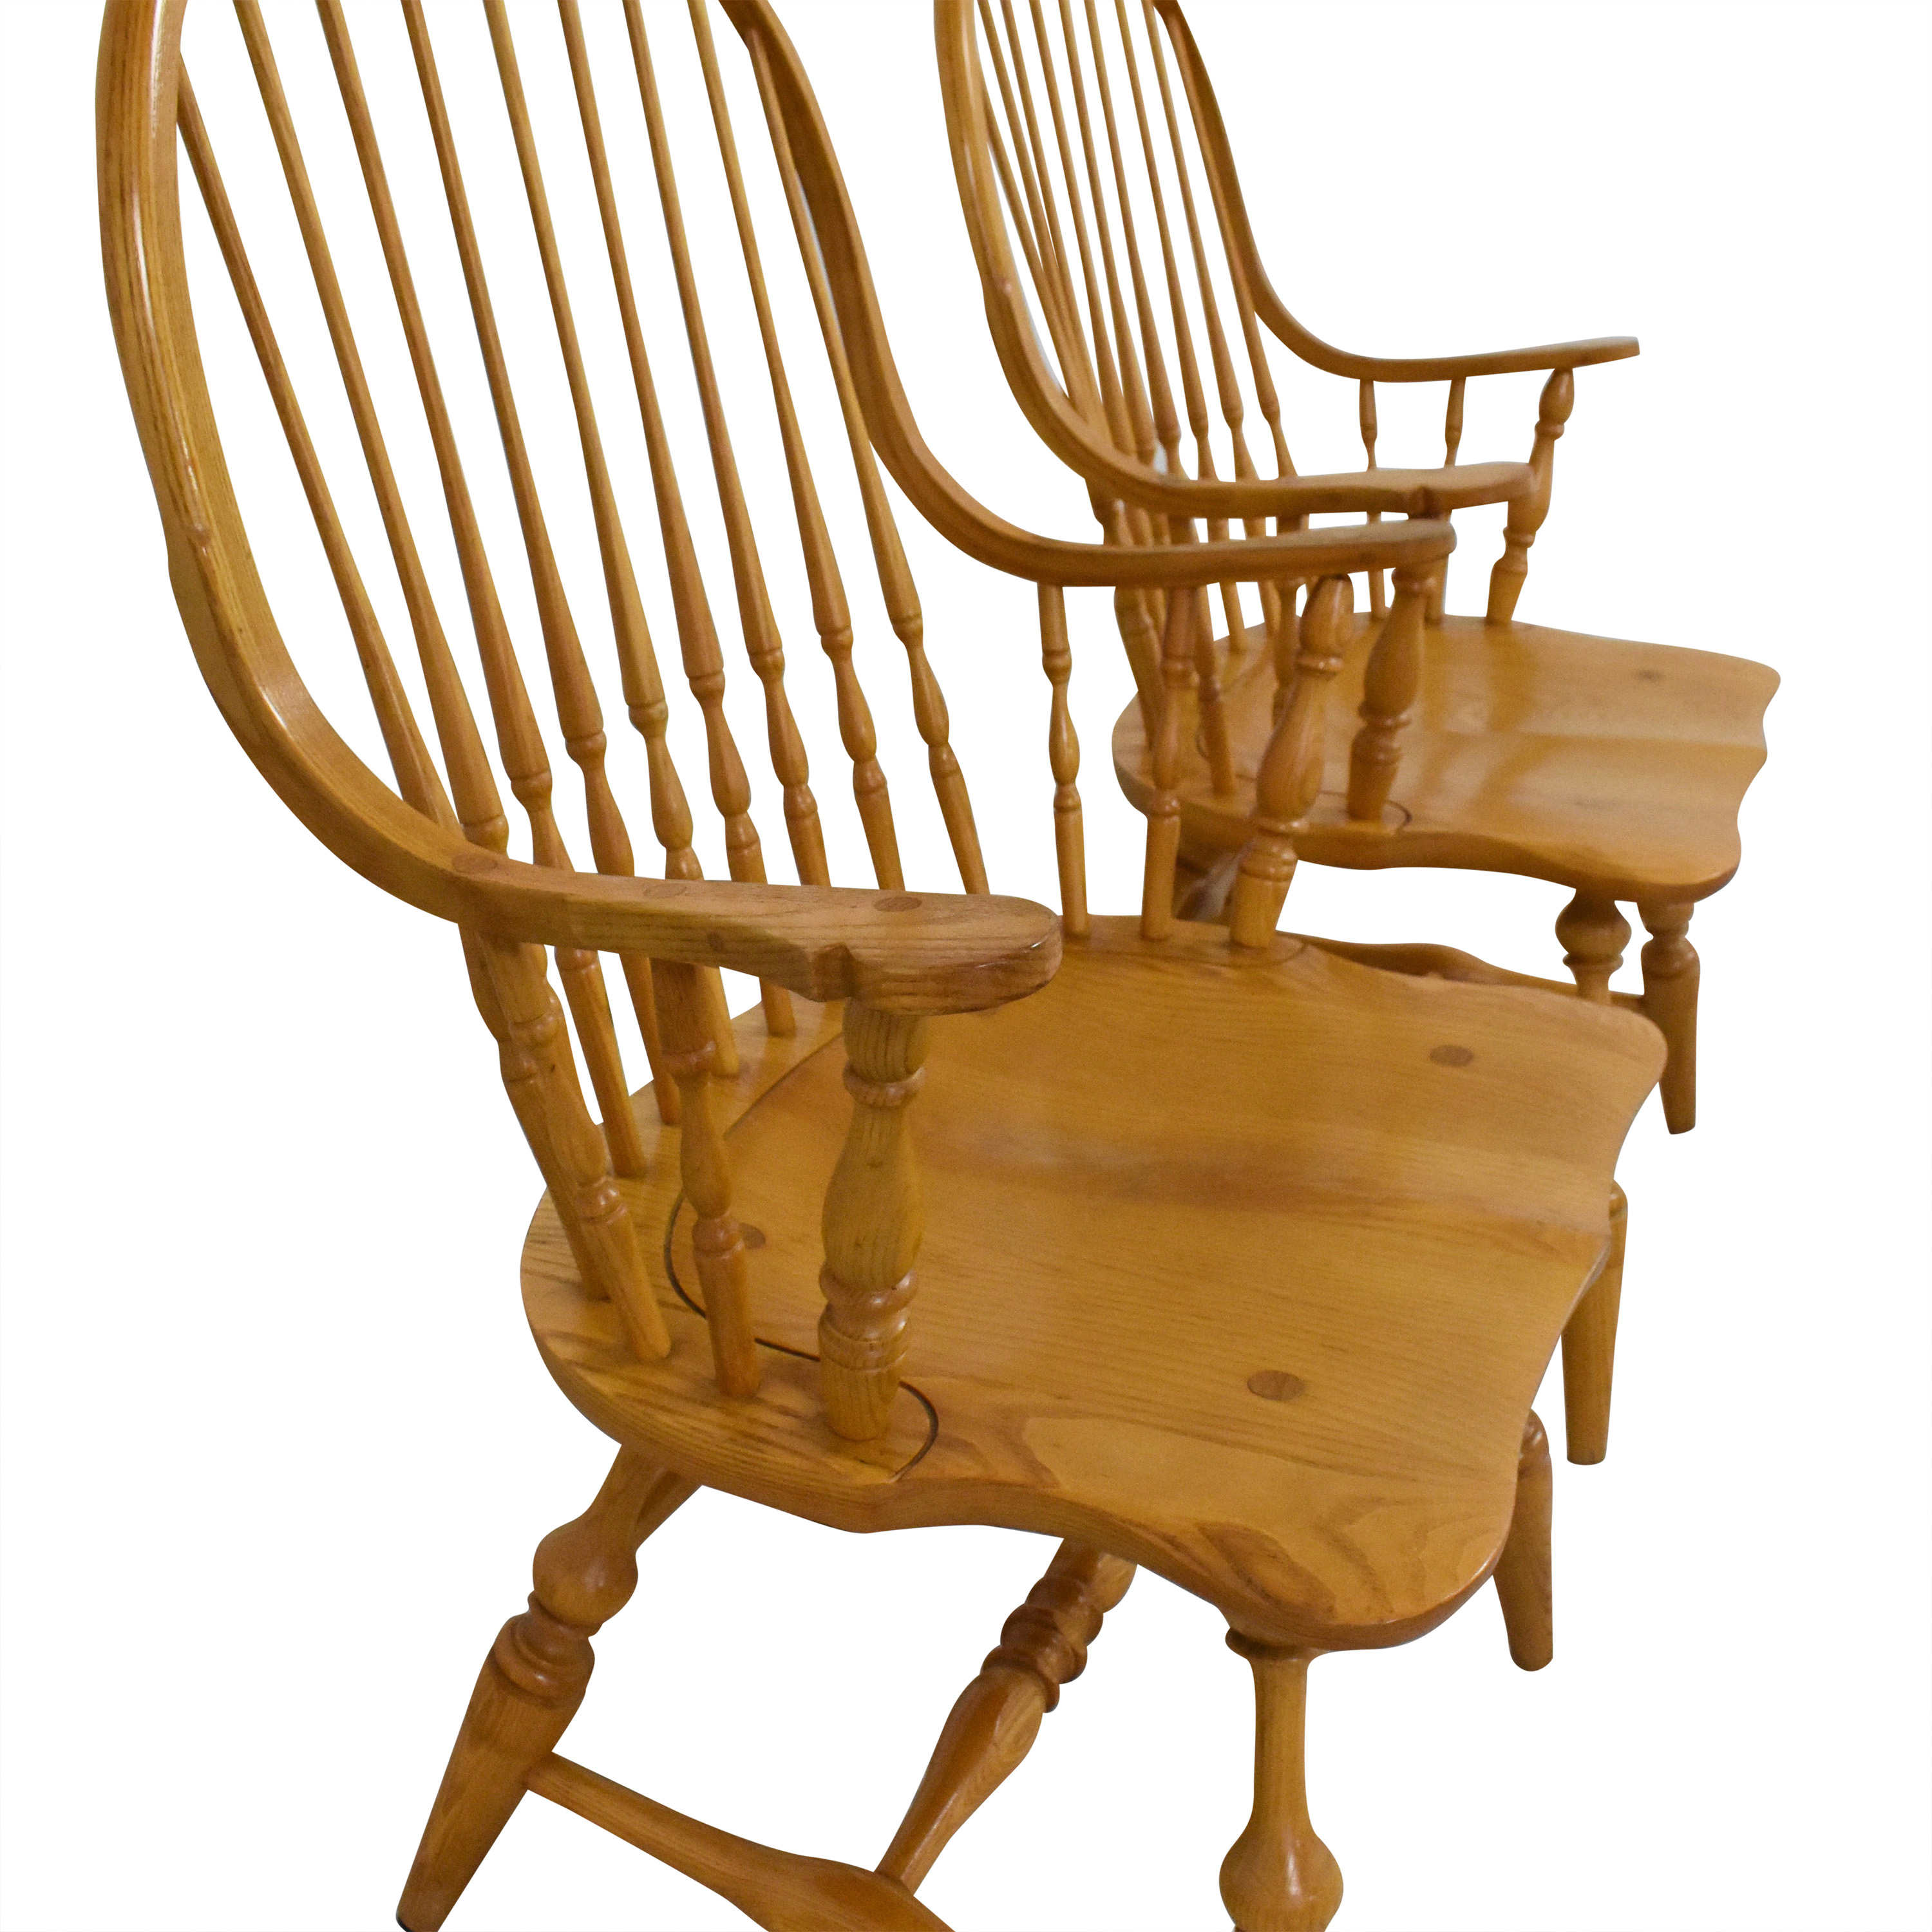 Hitchcock Windsor Style Dining Chairs / Chairs